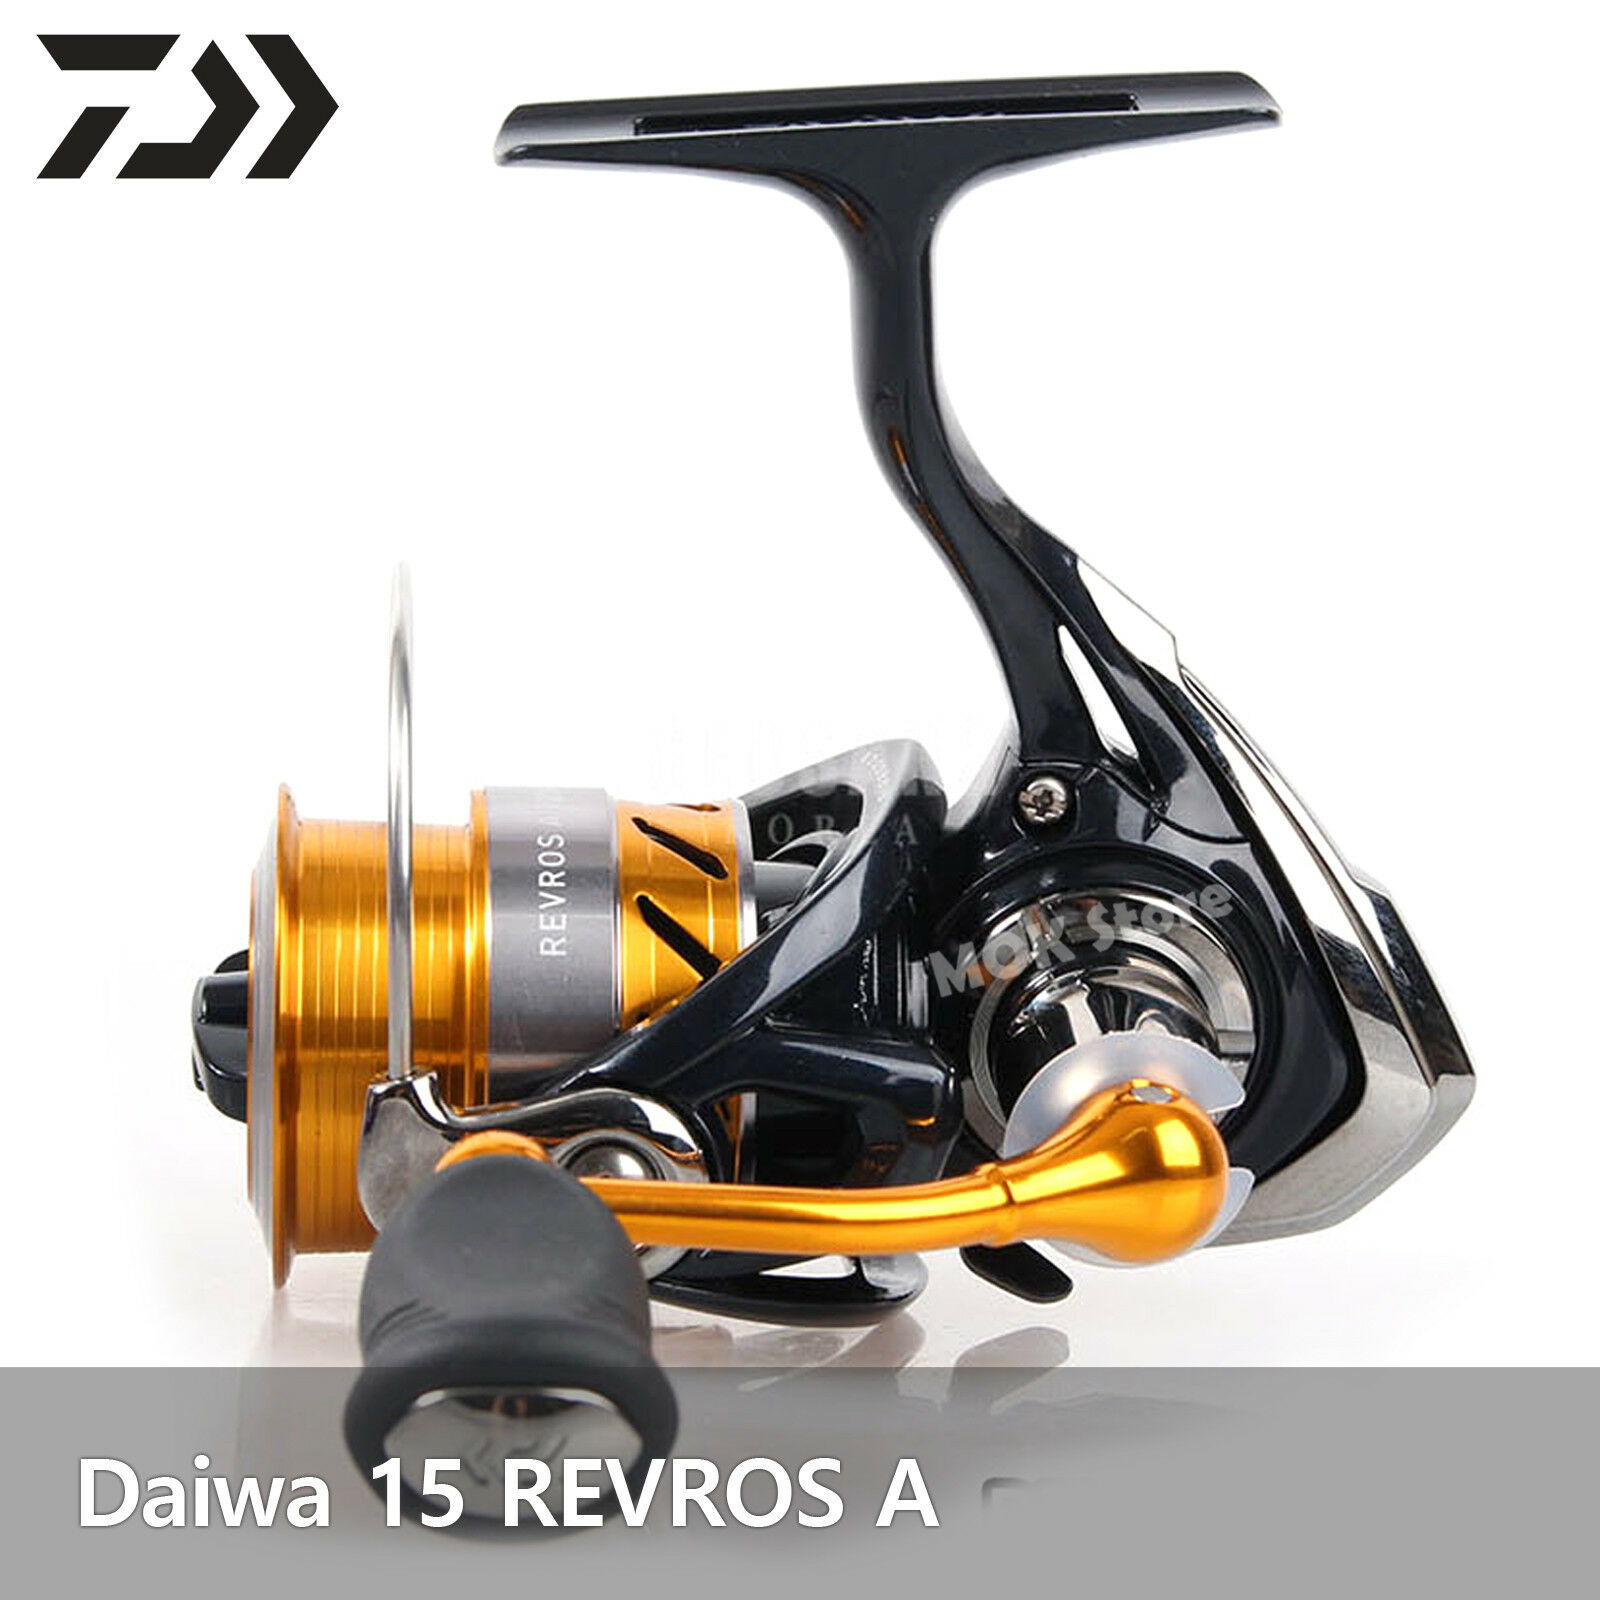 Daiwa 15 REVROS un Spinning Reel Air rougeor grand équilibre Fishing Reels